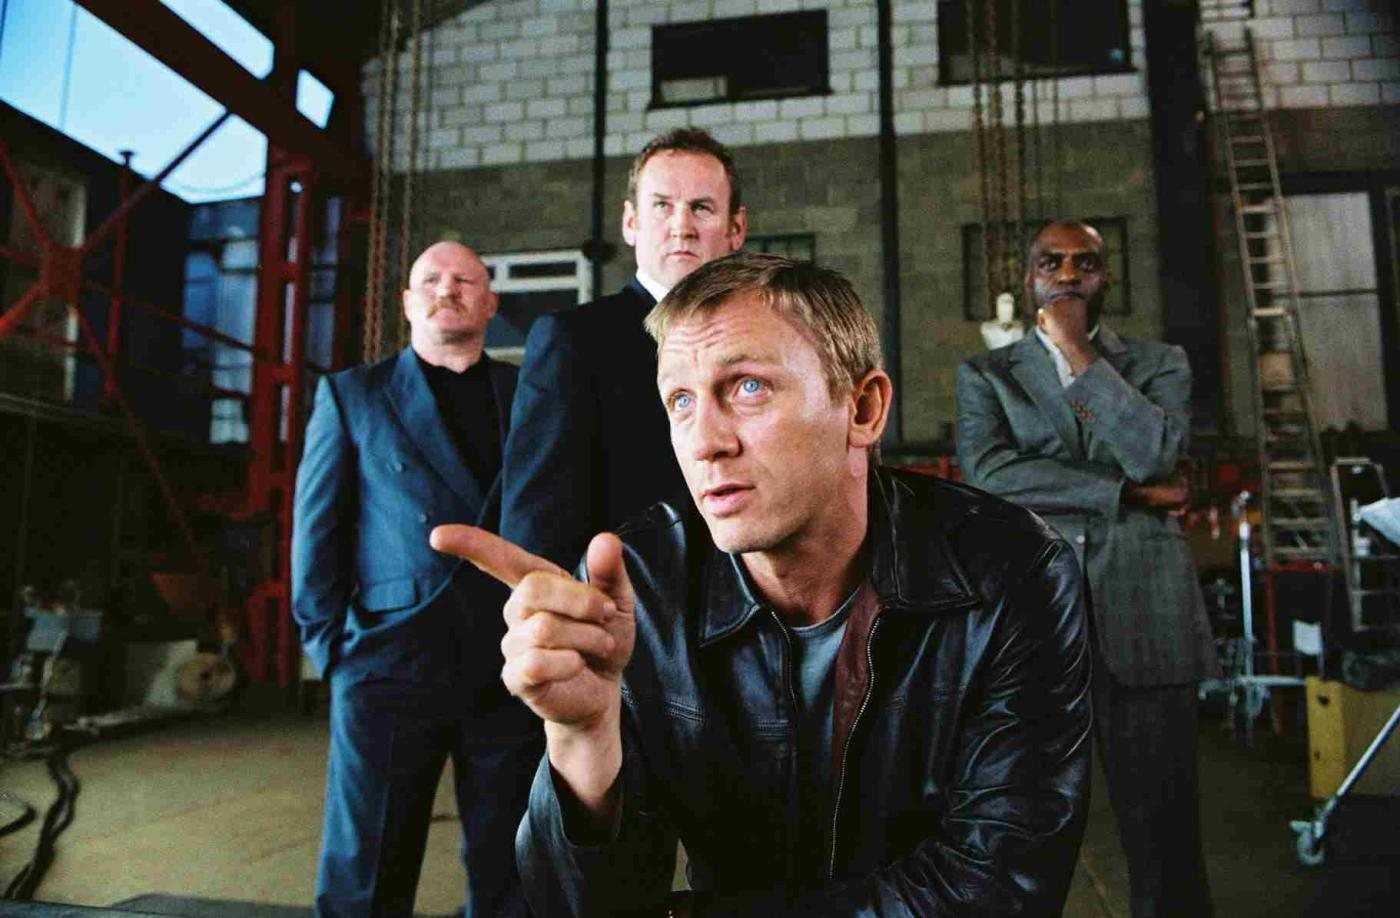 still-of-colm-meaney,-daniel-craig-and-george-harris-in-layer-cake-(2004)